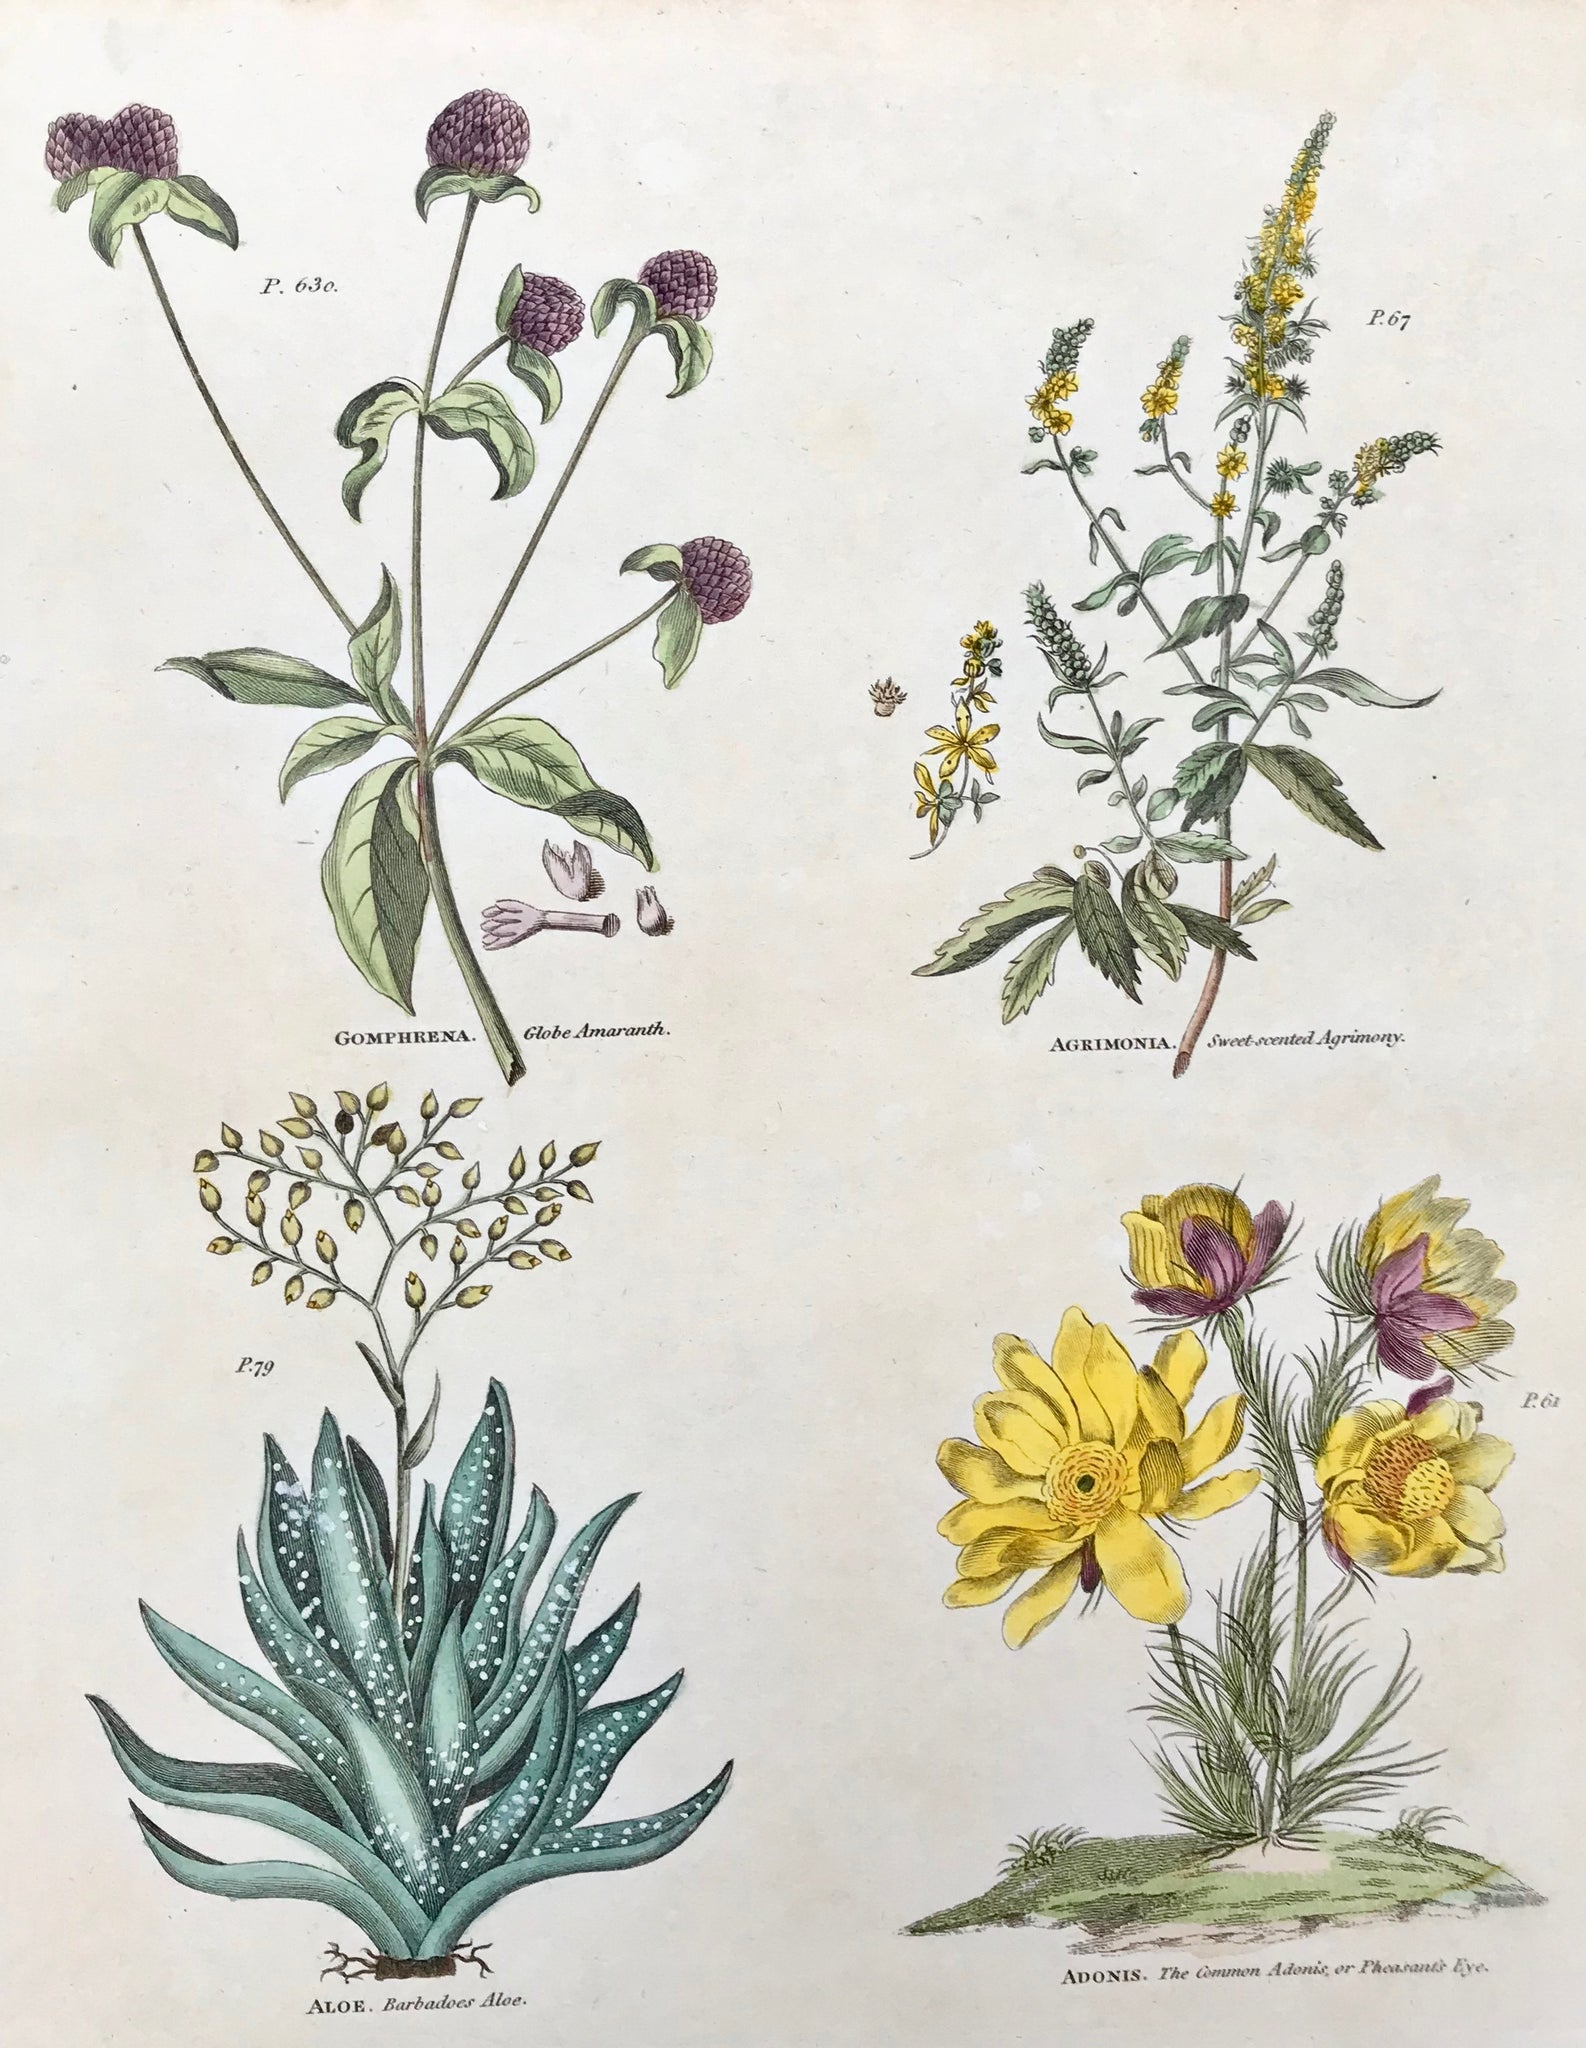 "Upper left: Gomphrena Globe Amaranth Upper right: Agrimonia Sweet-scented Agrimony Lower left: Aloe Barbadoes Aloe Lower right: Adonis. The Common Adonis or Pheasant's Eye.  Antique Botanical Prints from ""The Universal Herbal"" by Thomas Green.  The complete title of this accurately and absolutely delightfully hand-colored work is: ""The Universal Herbal"", or Botanical, Medical, and Agricultural Dictionary, containing an Accoun"